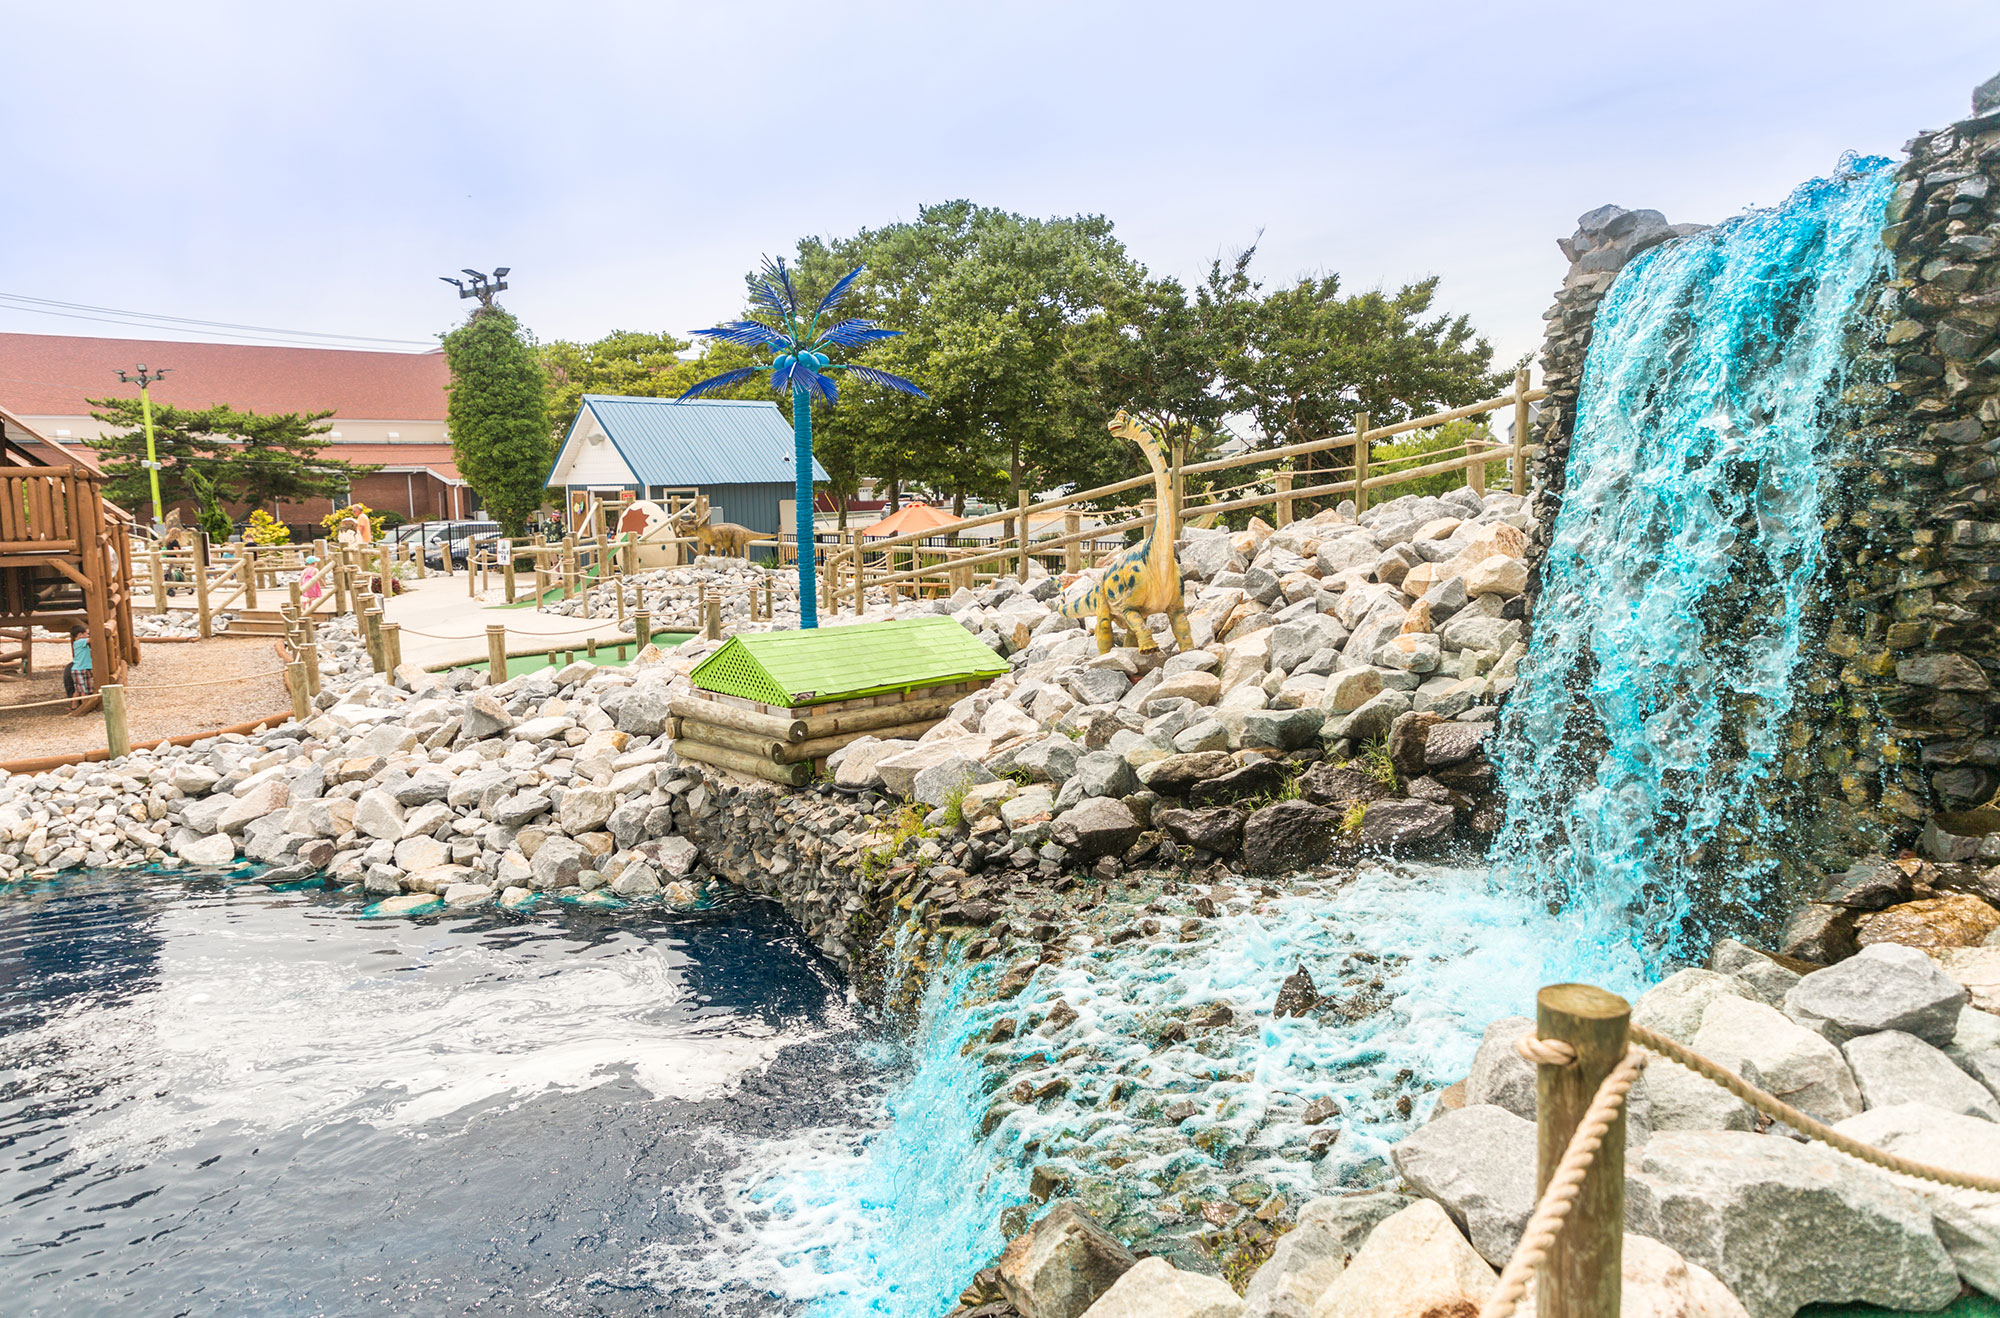 Waterfall at the mini golf course